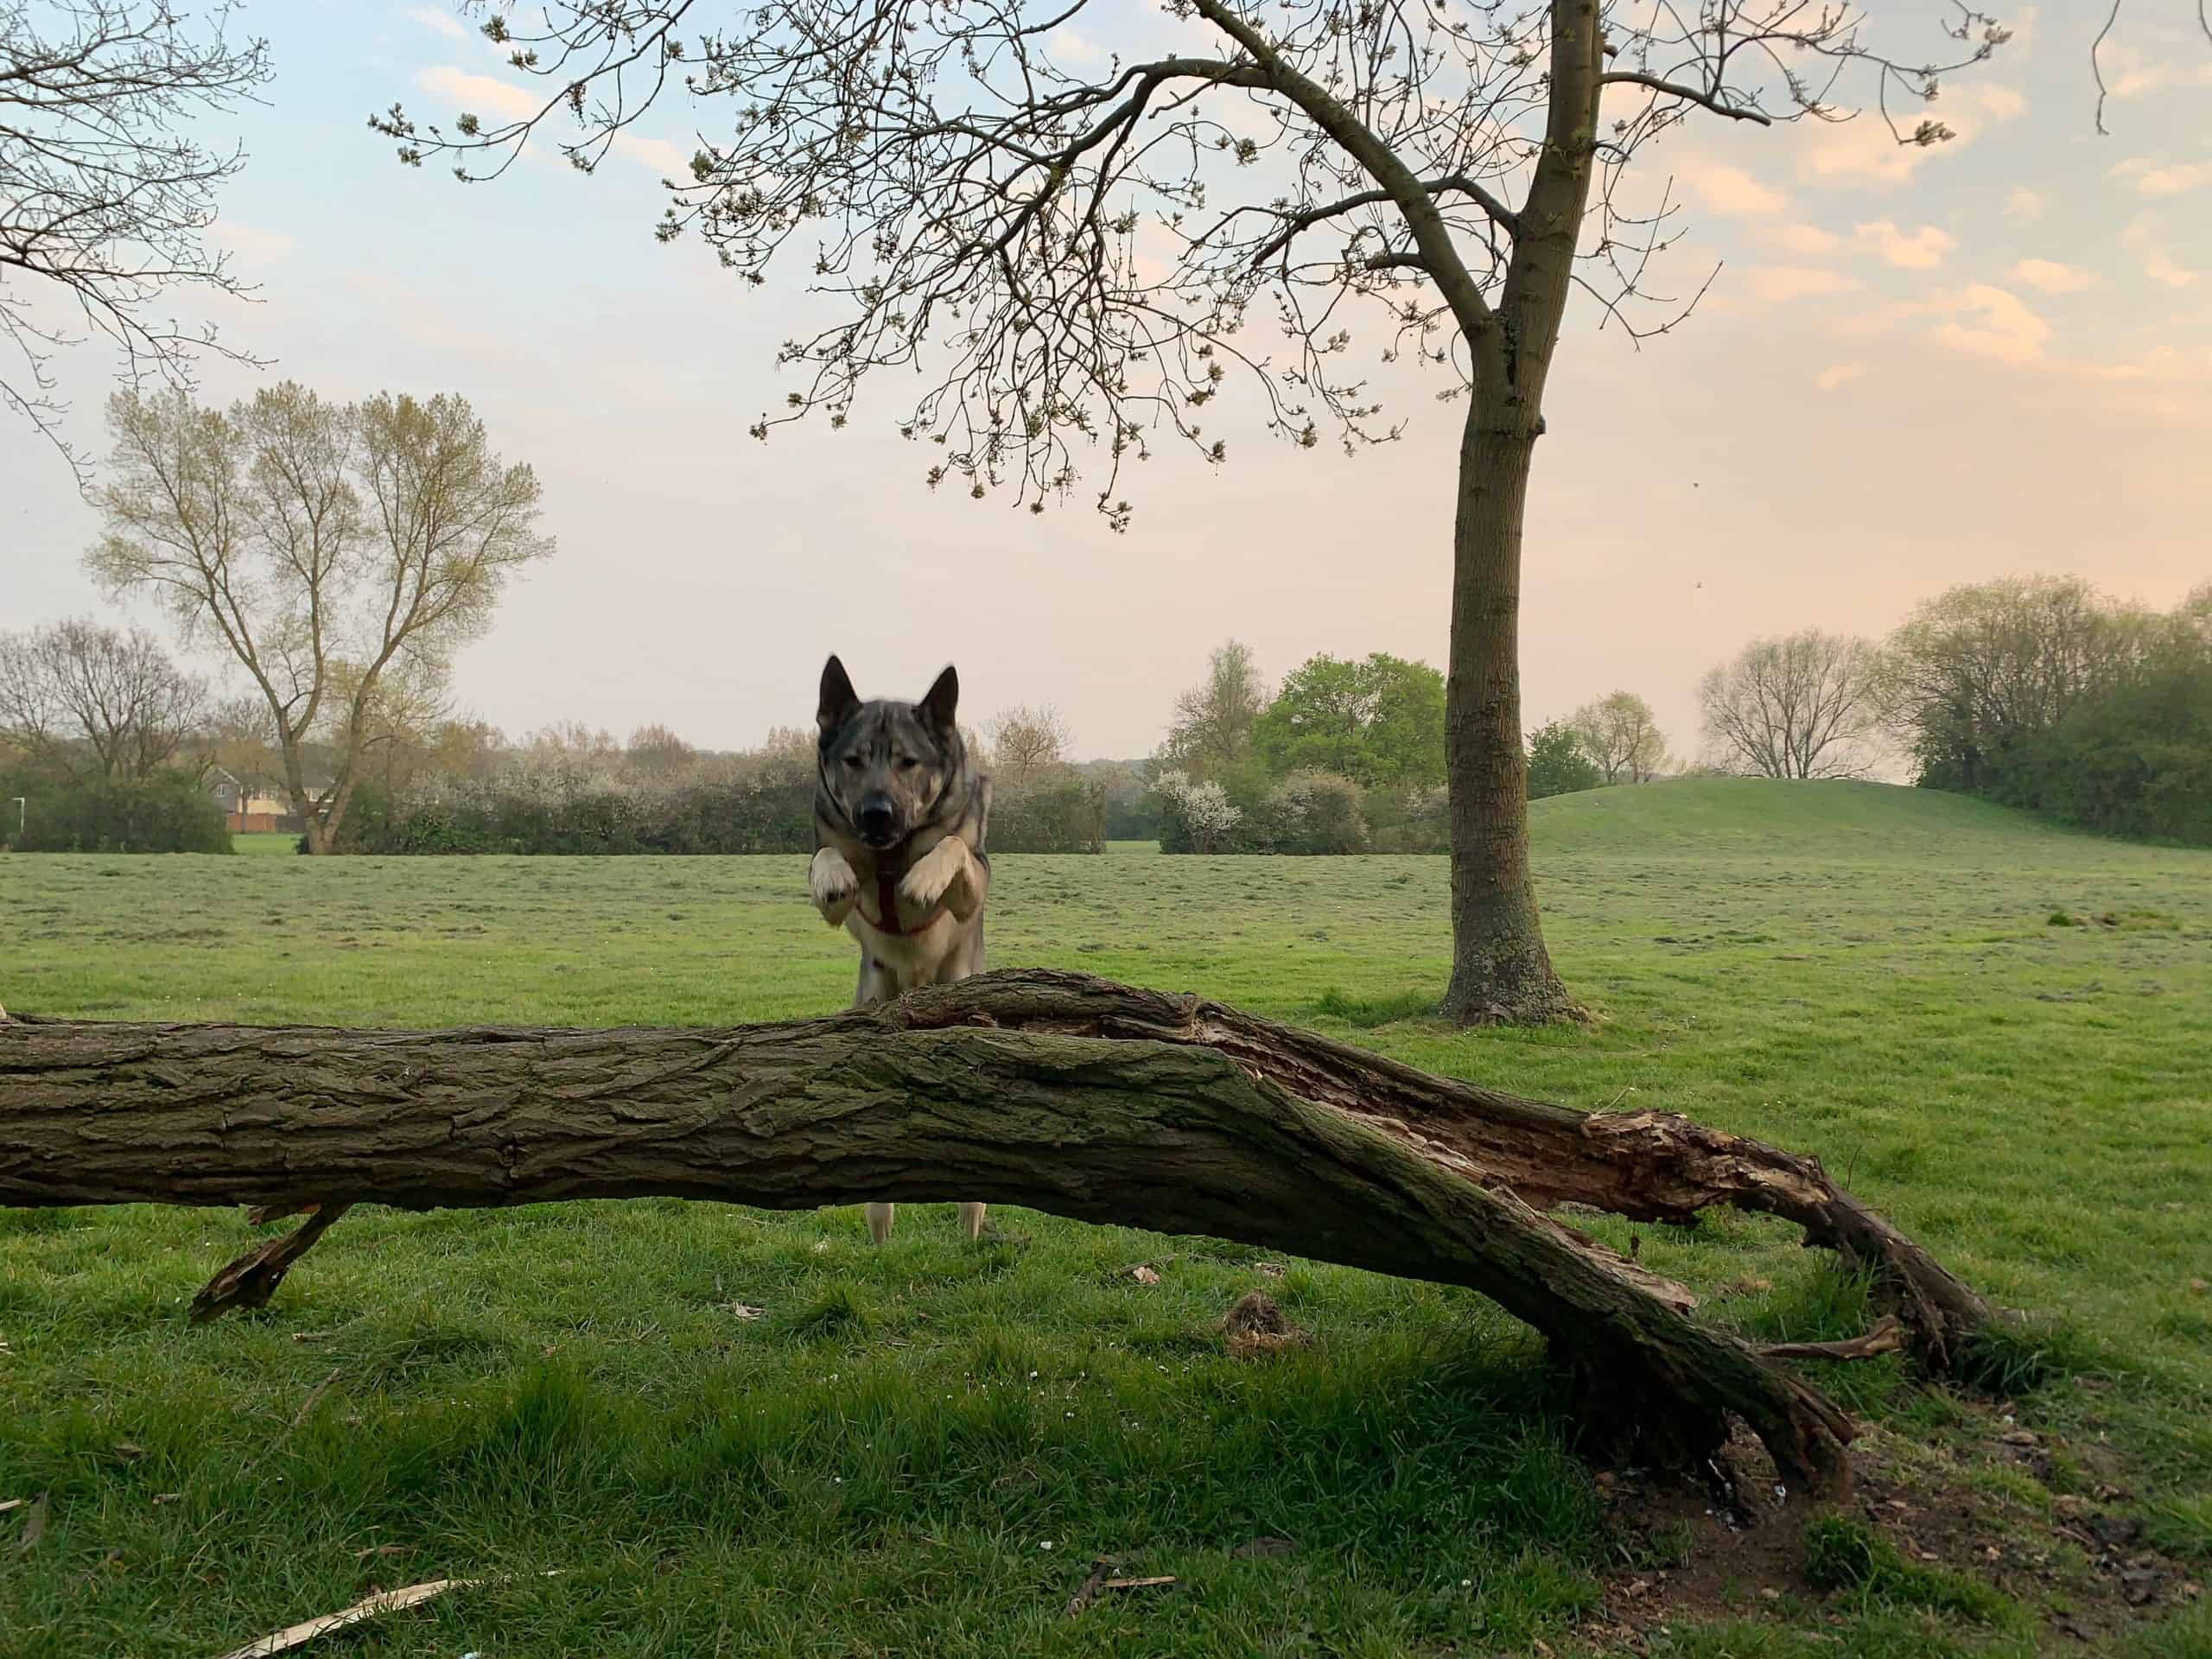 Indie the GSD jumping over a fallen tree for parkour